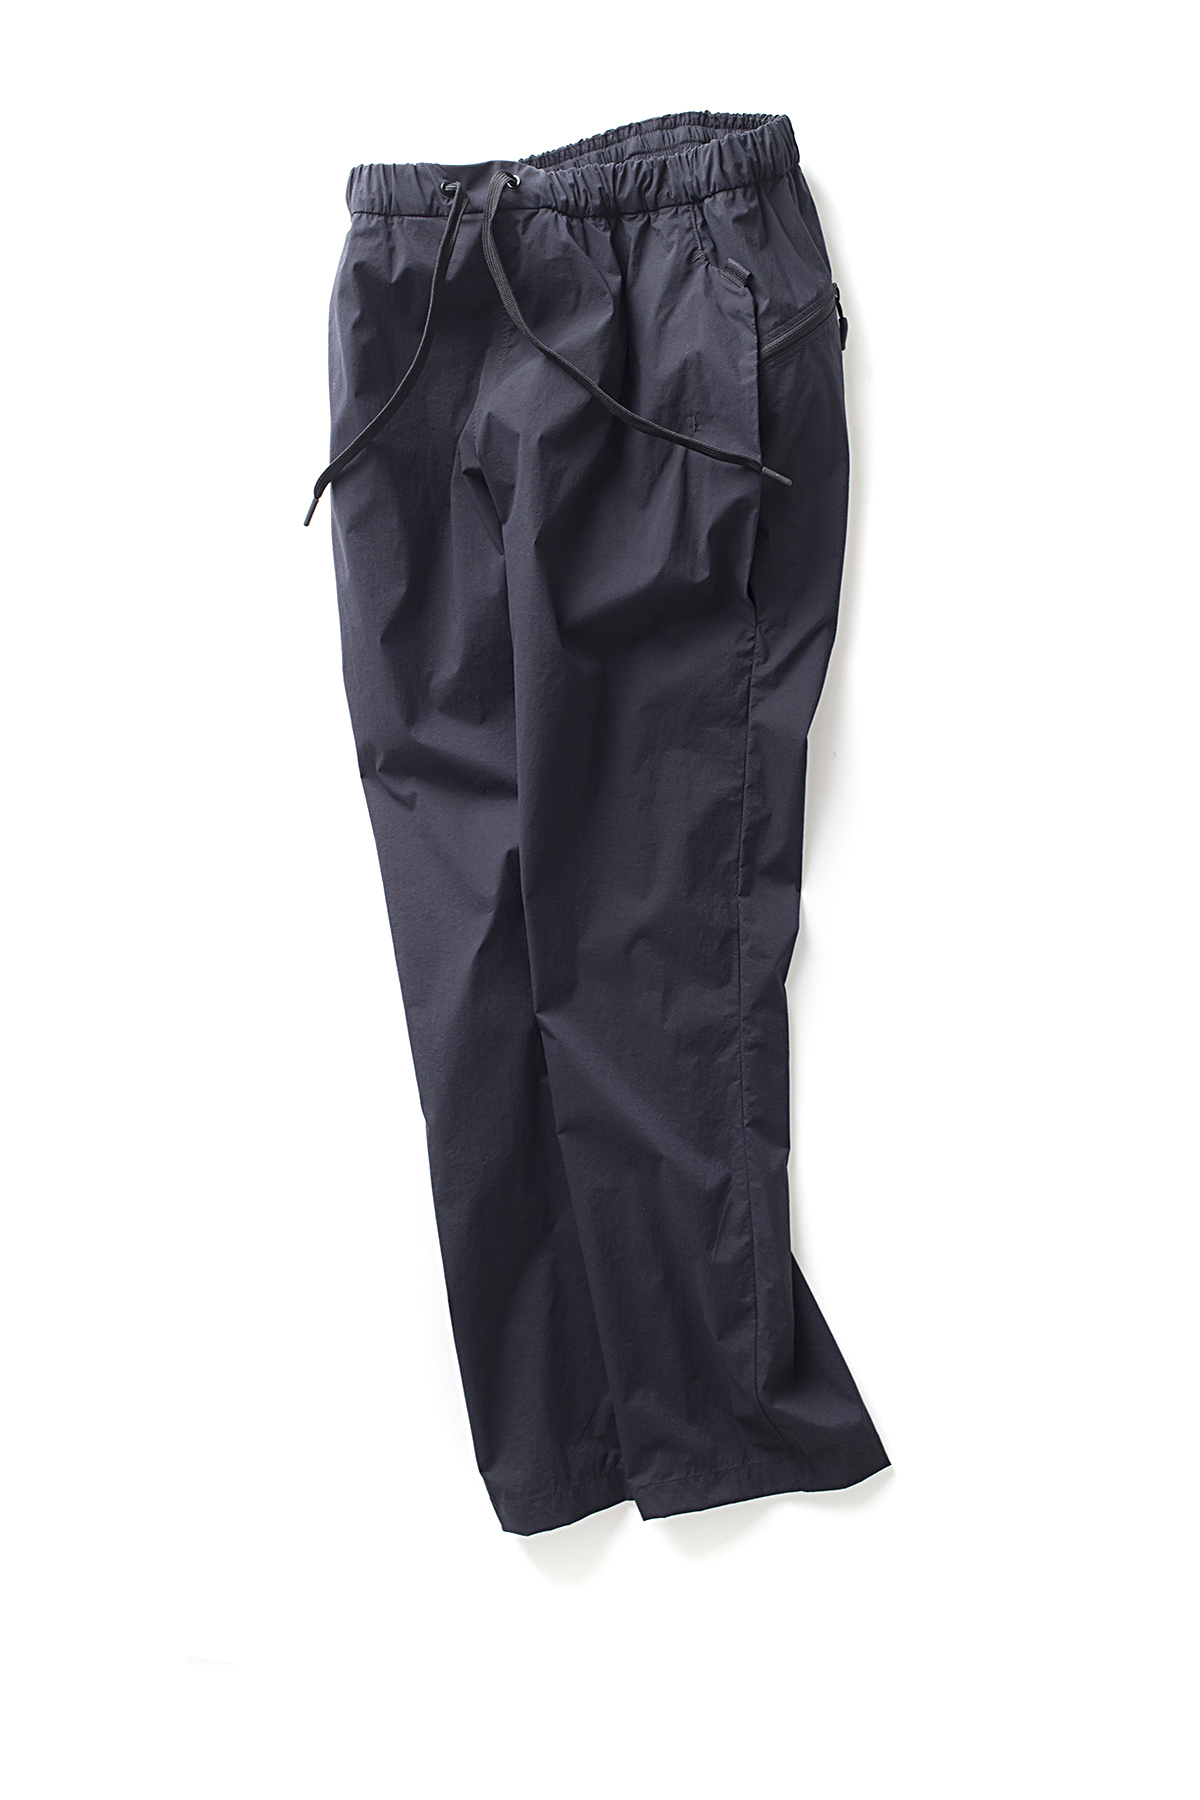 alk phenix : Crank Pants (Black)